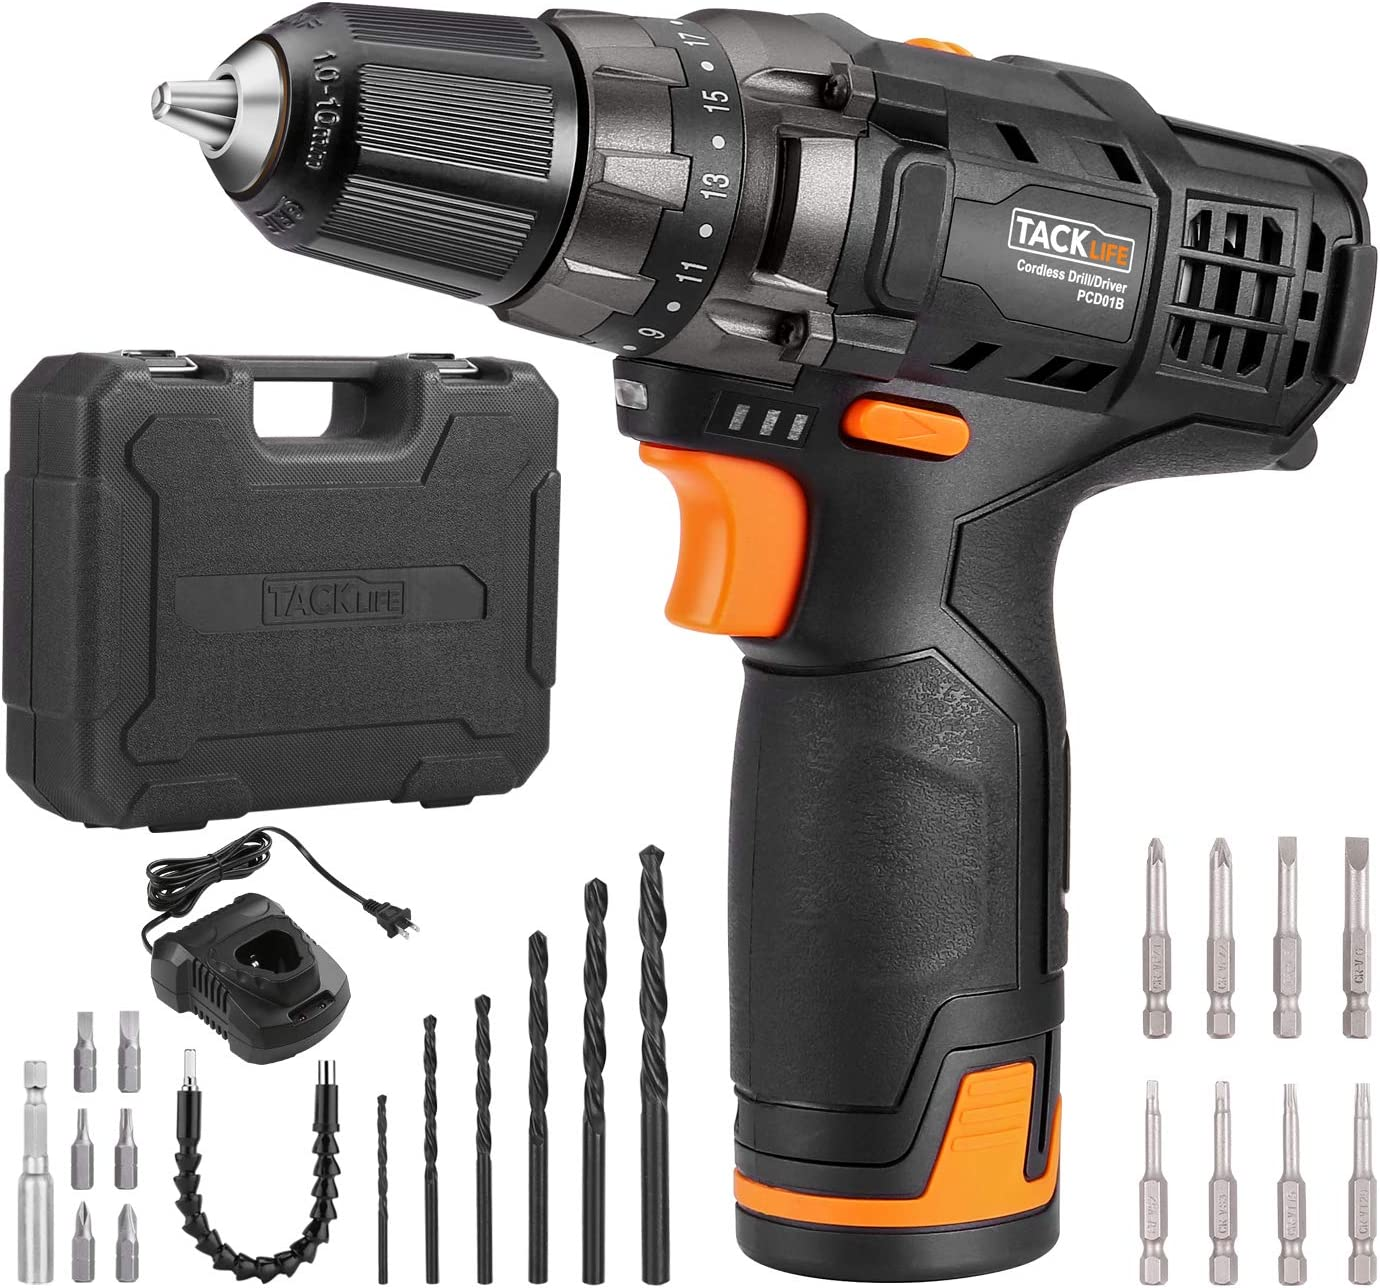 """TACKLIFE 12V Cordless Drill Driver,3/8"""" Metal Chuck,2 Speeds Compact Drill Set with 13pcs Accessories,2000mAh Lithium Battery Pack and 1Hour Fast Charger,PCD01B"""